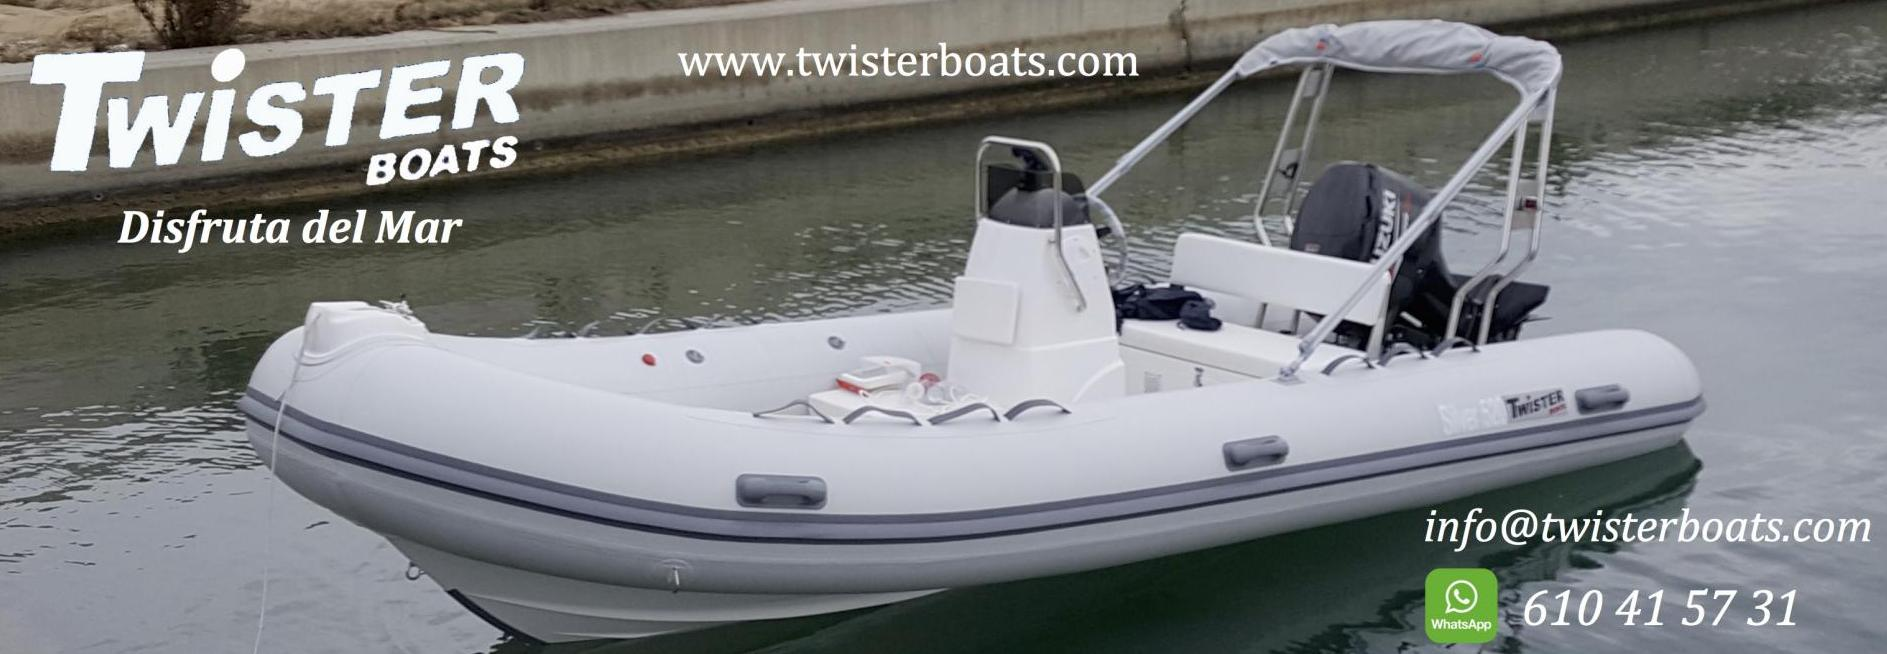 Twister Boats SL